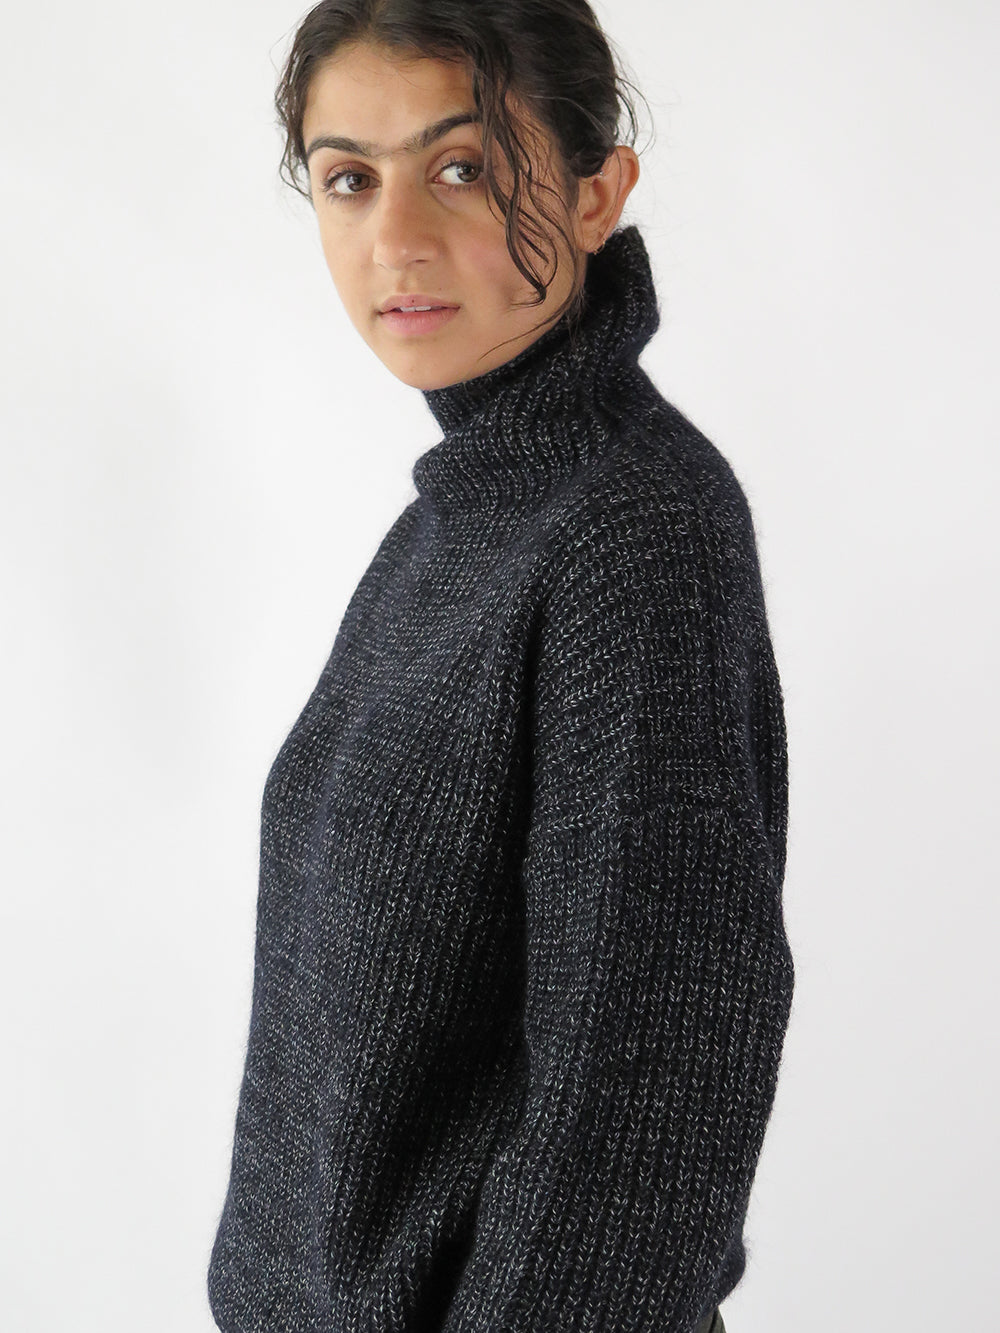 nico volcano sweater in navy